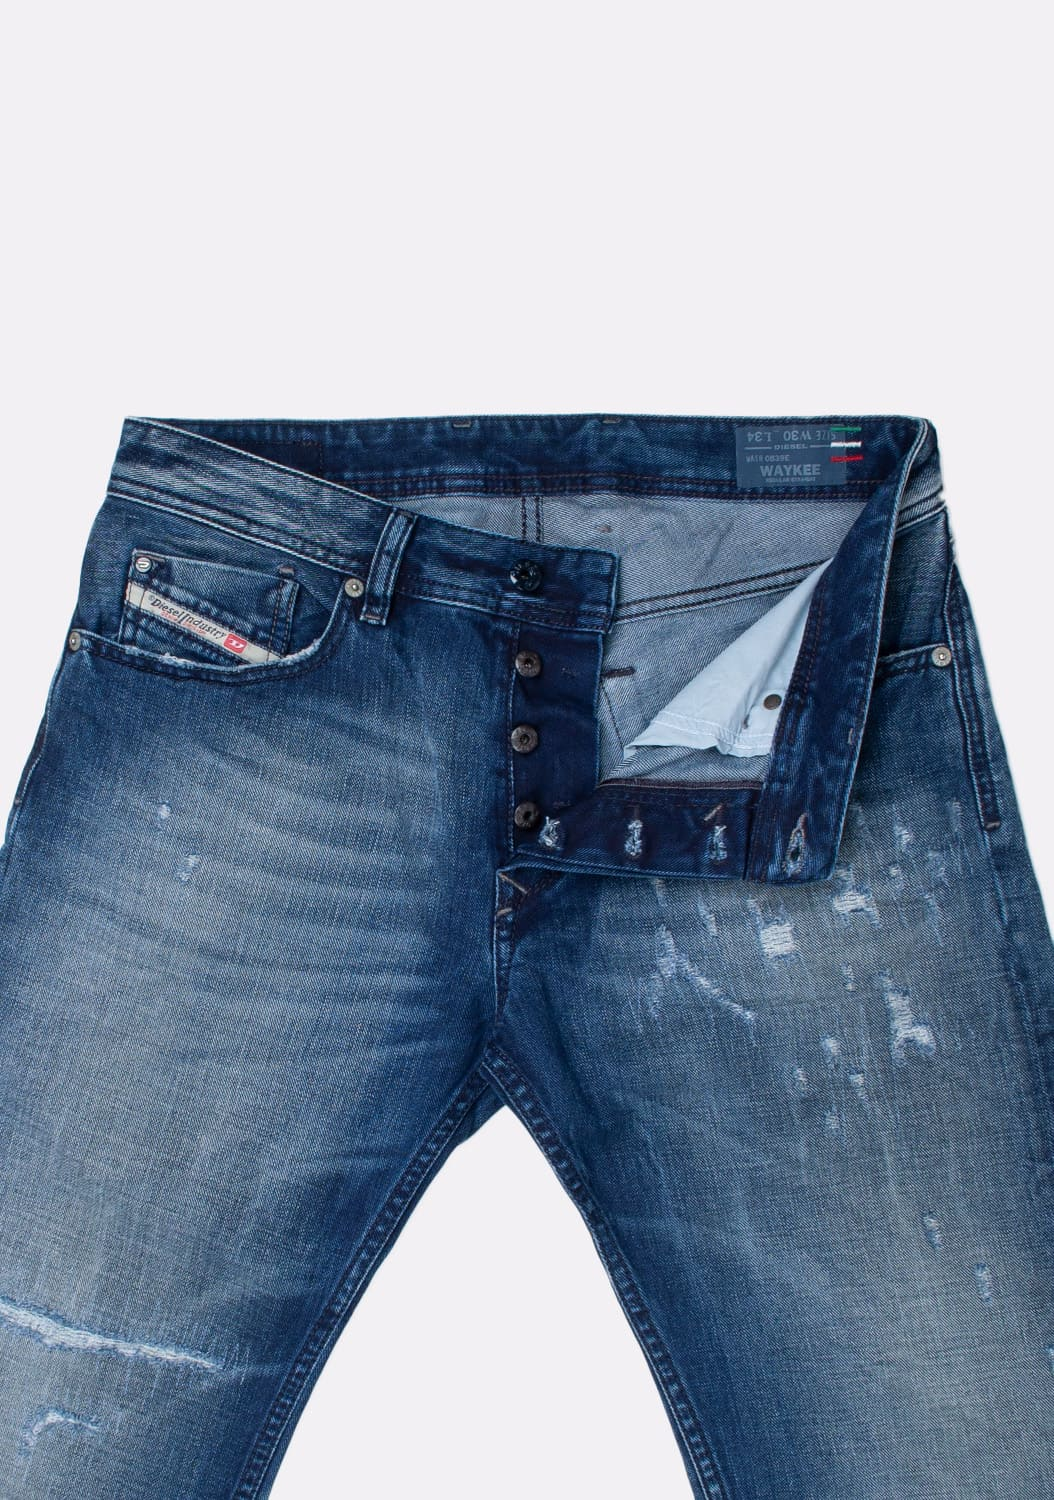 Diesel-Waykee-0839E-Regular-Straight-dydis-30-34 (3)